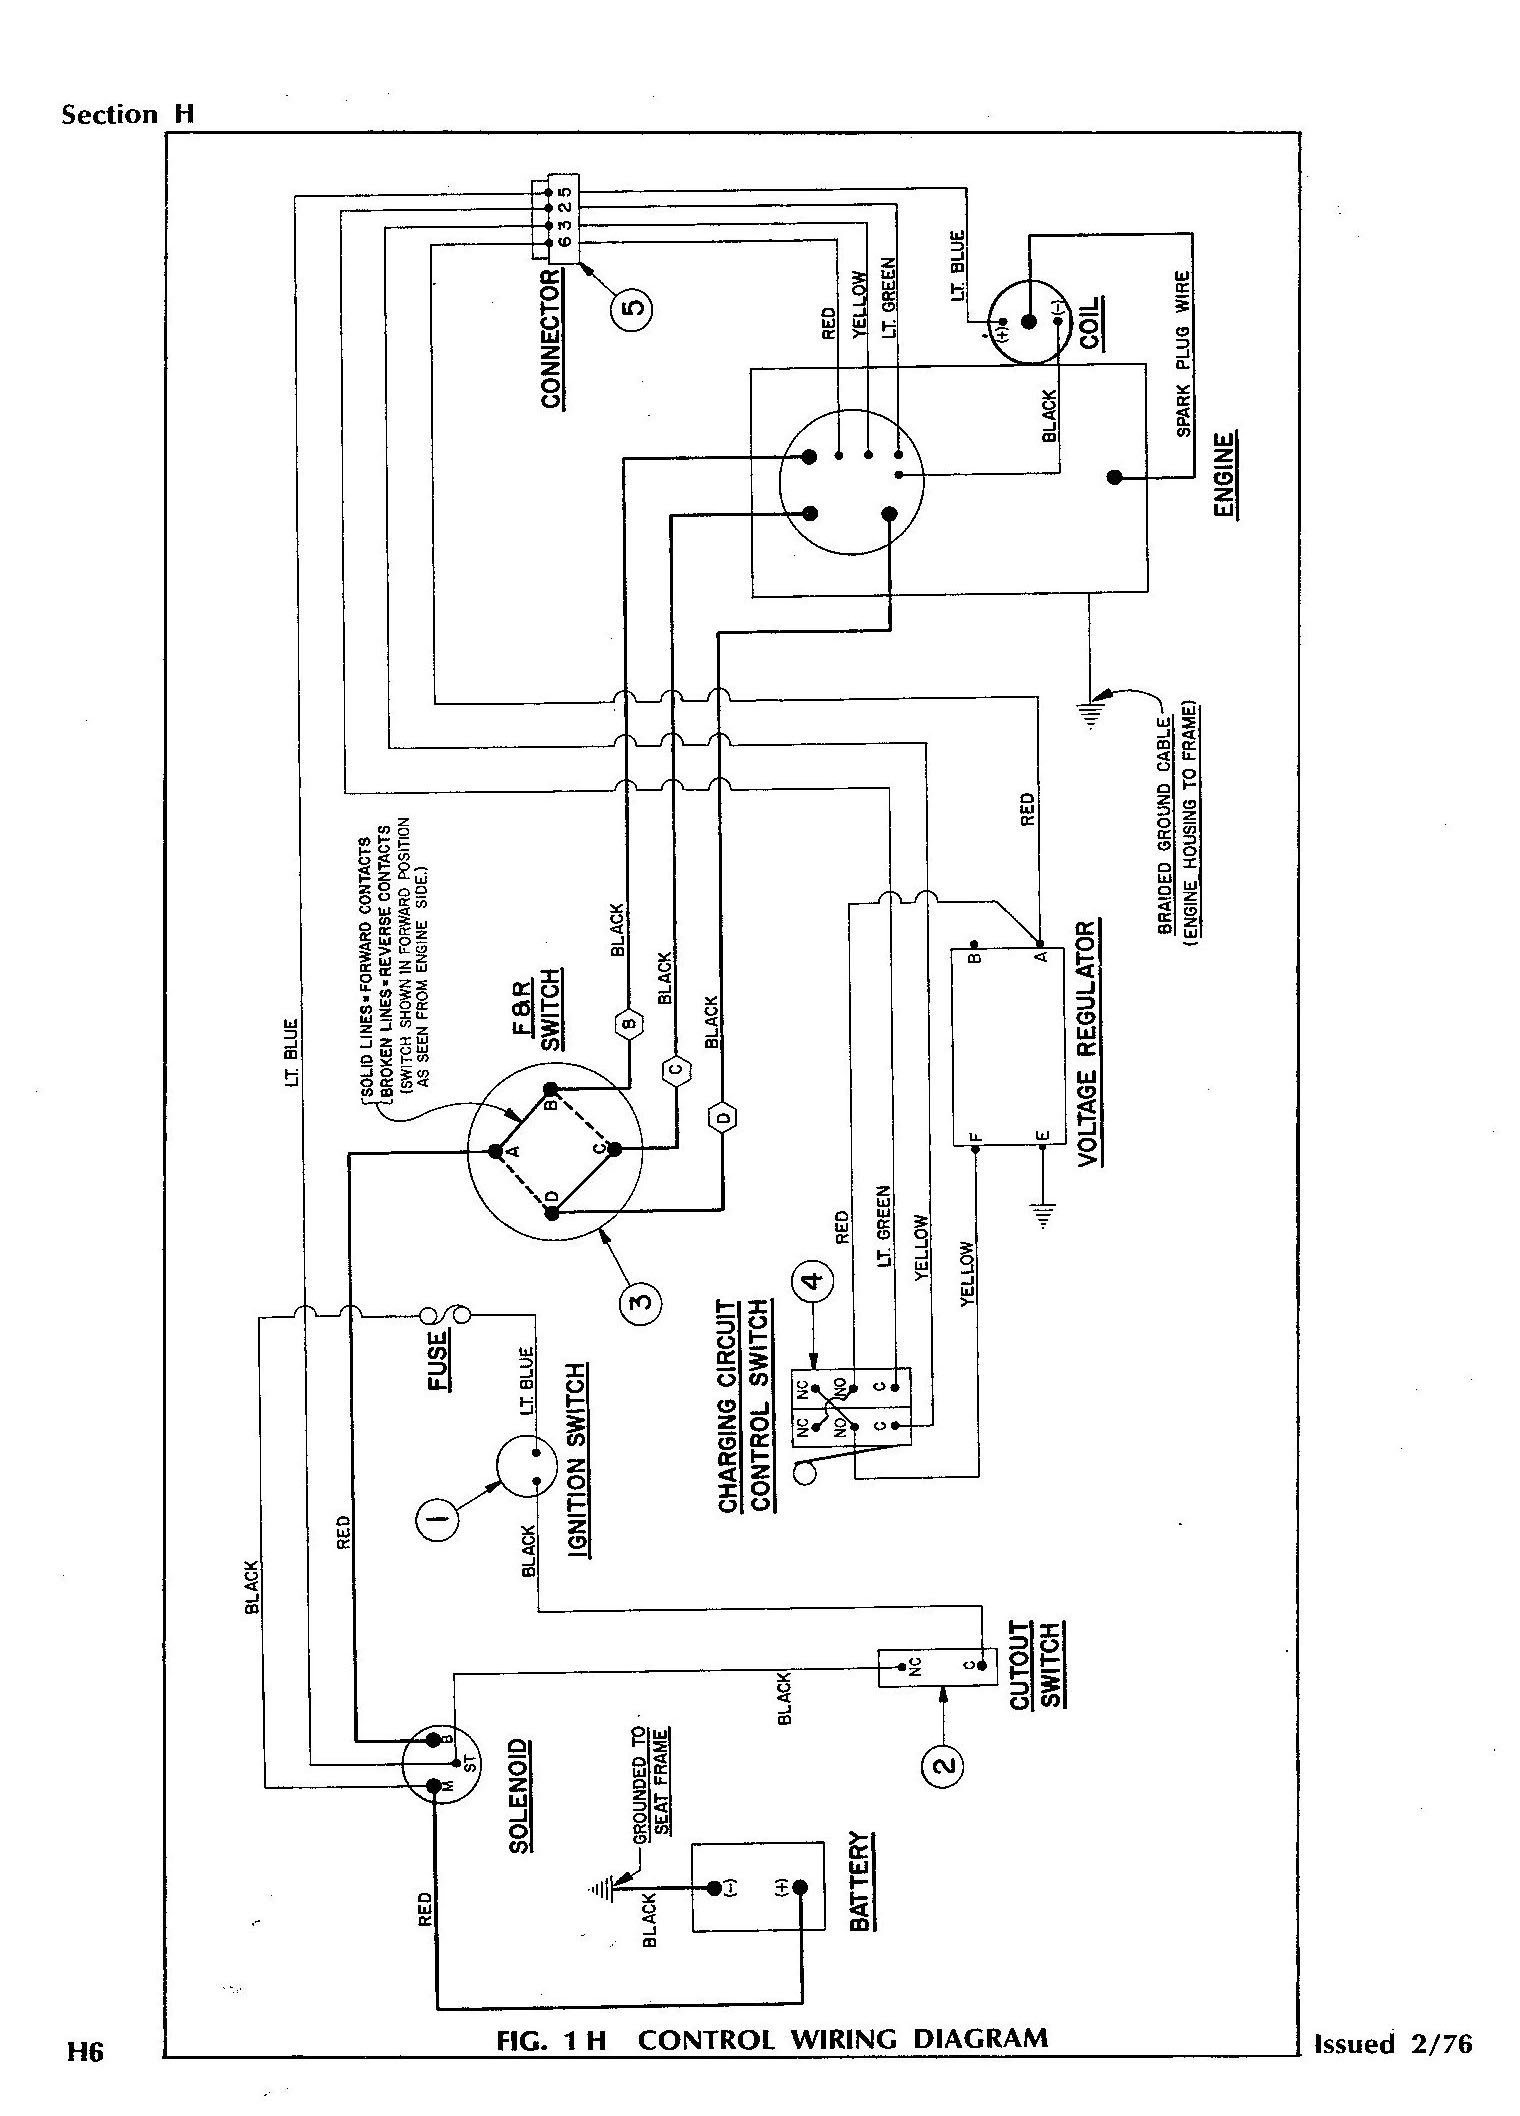 1976 Ezgo Wiring Diagram - Free Vehicle Wiring Diagrams •